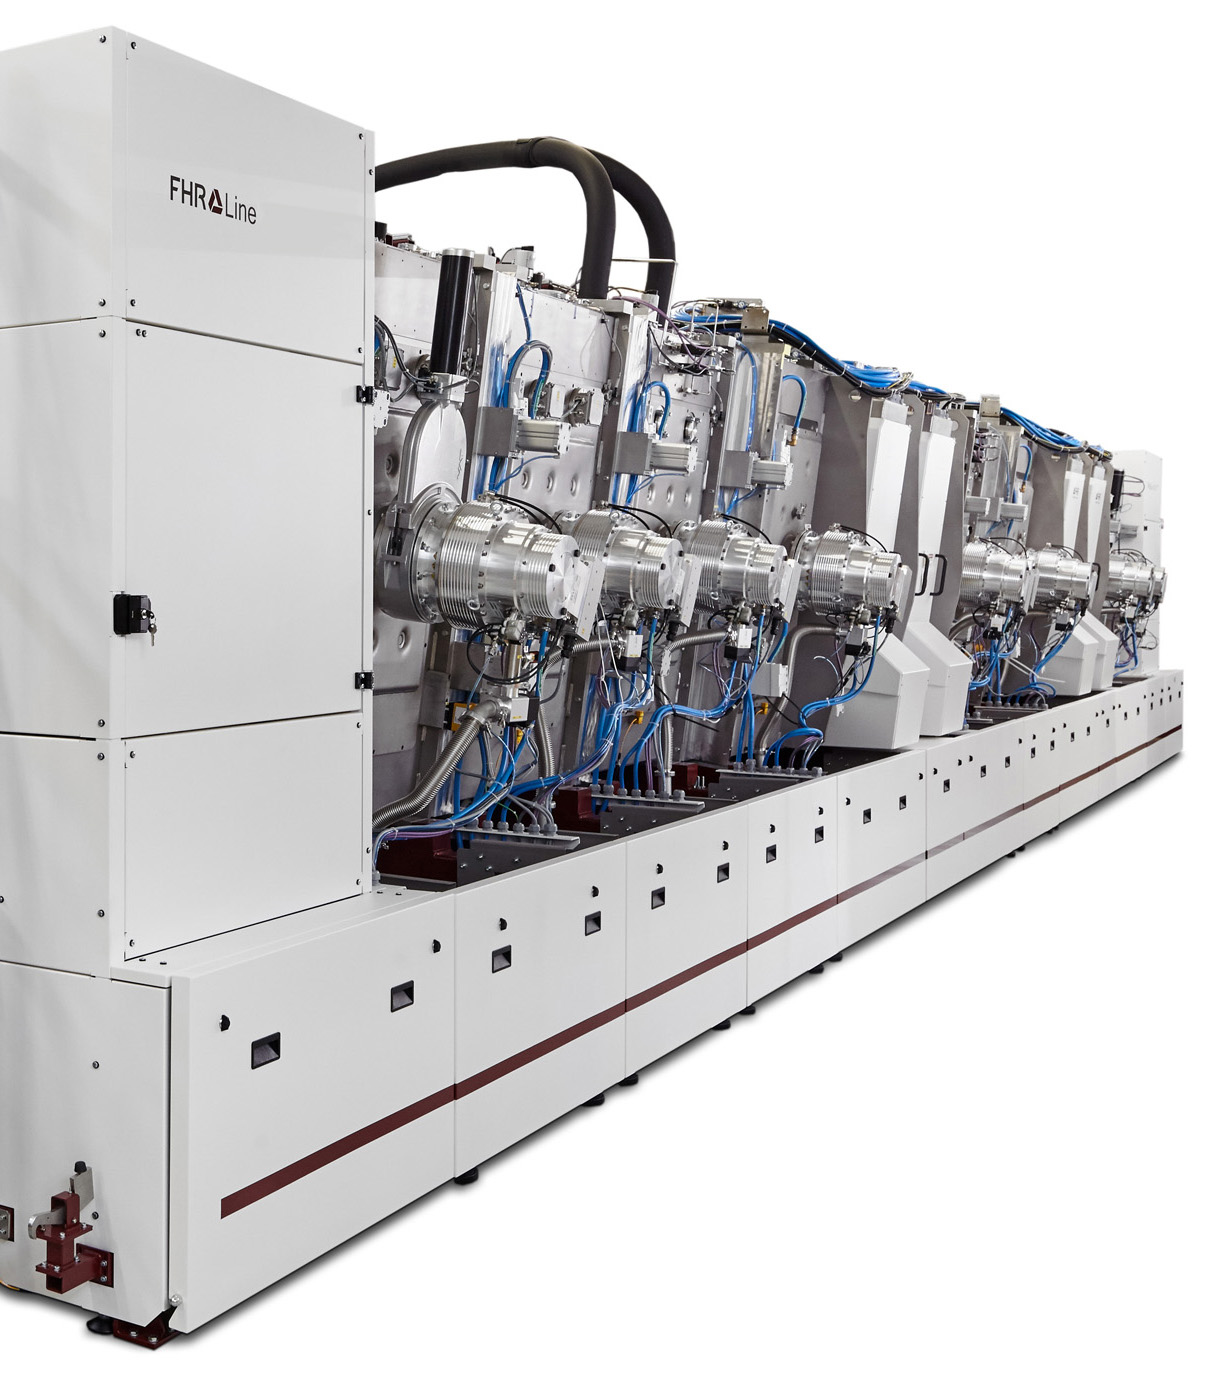 Centrotherm said that the tools orders were placed with its subsidiary FHR Anlagenbau and is valued in the lower double-digit euro million range. Image: FHR